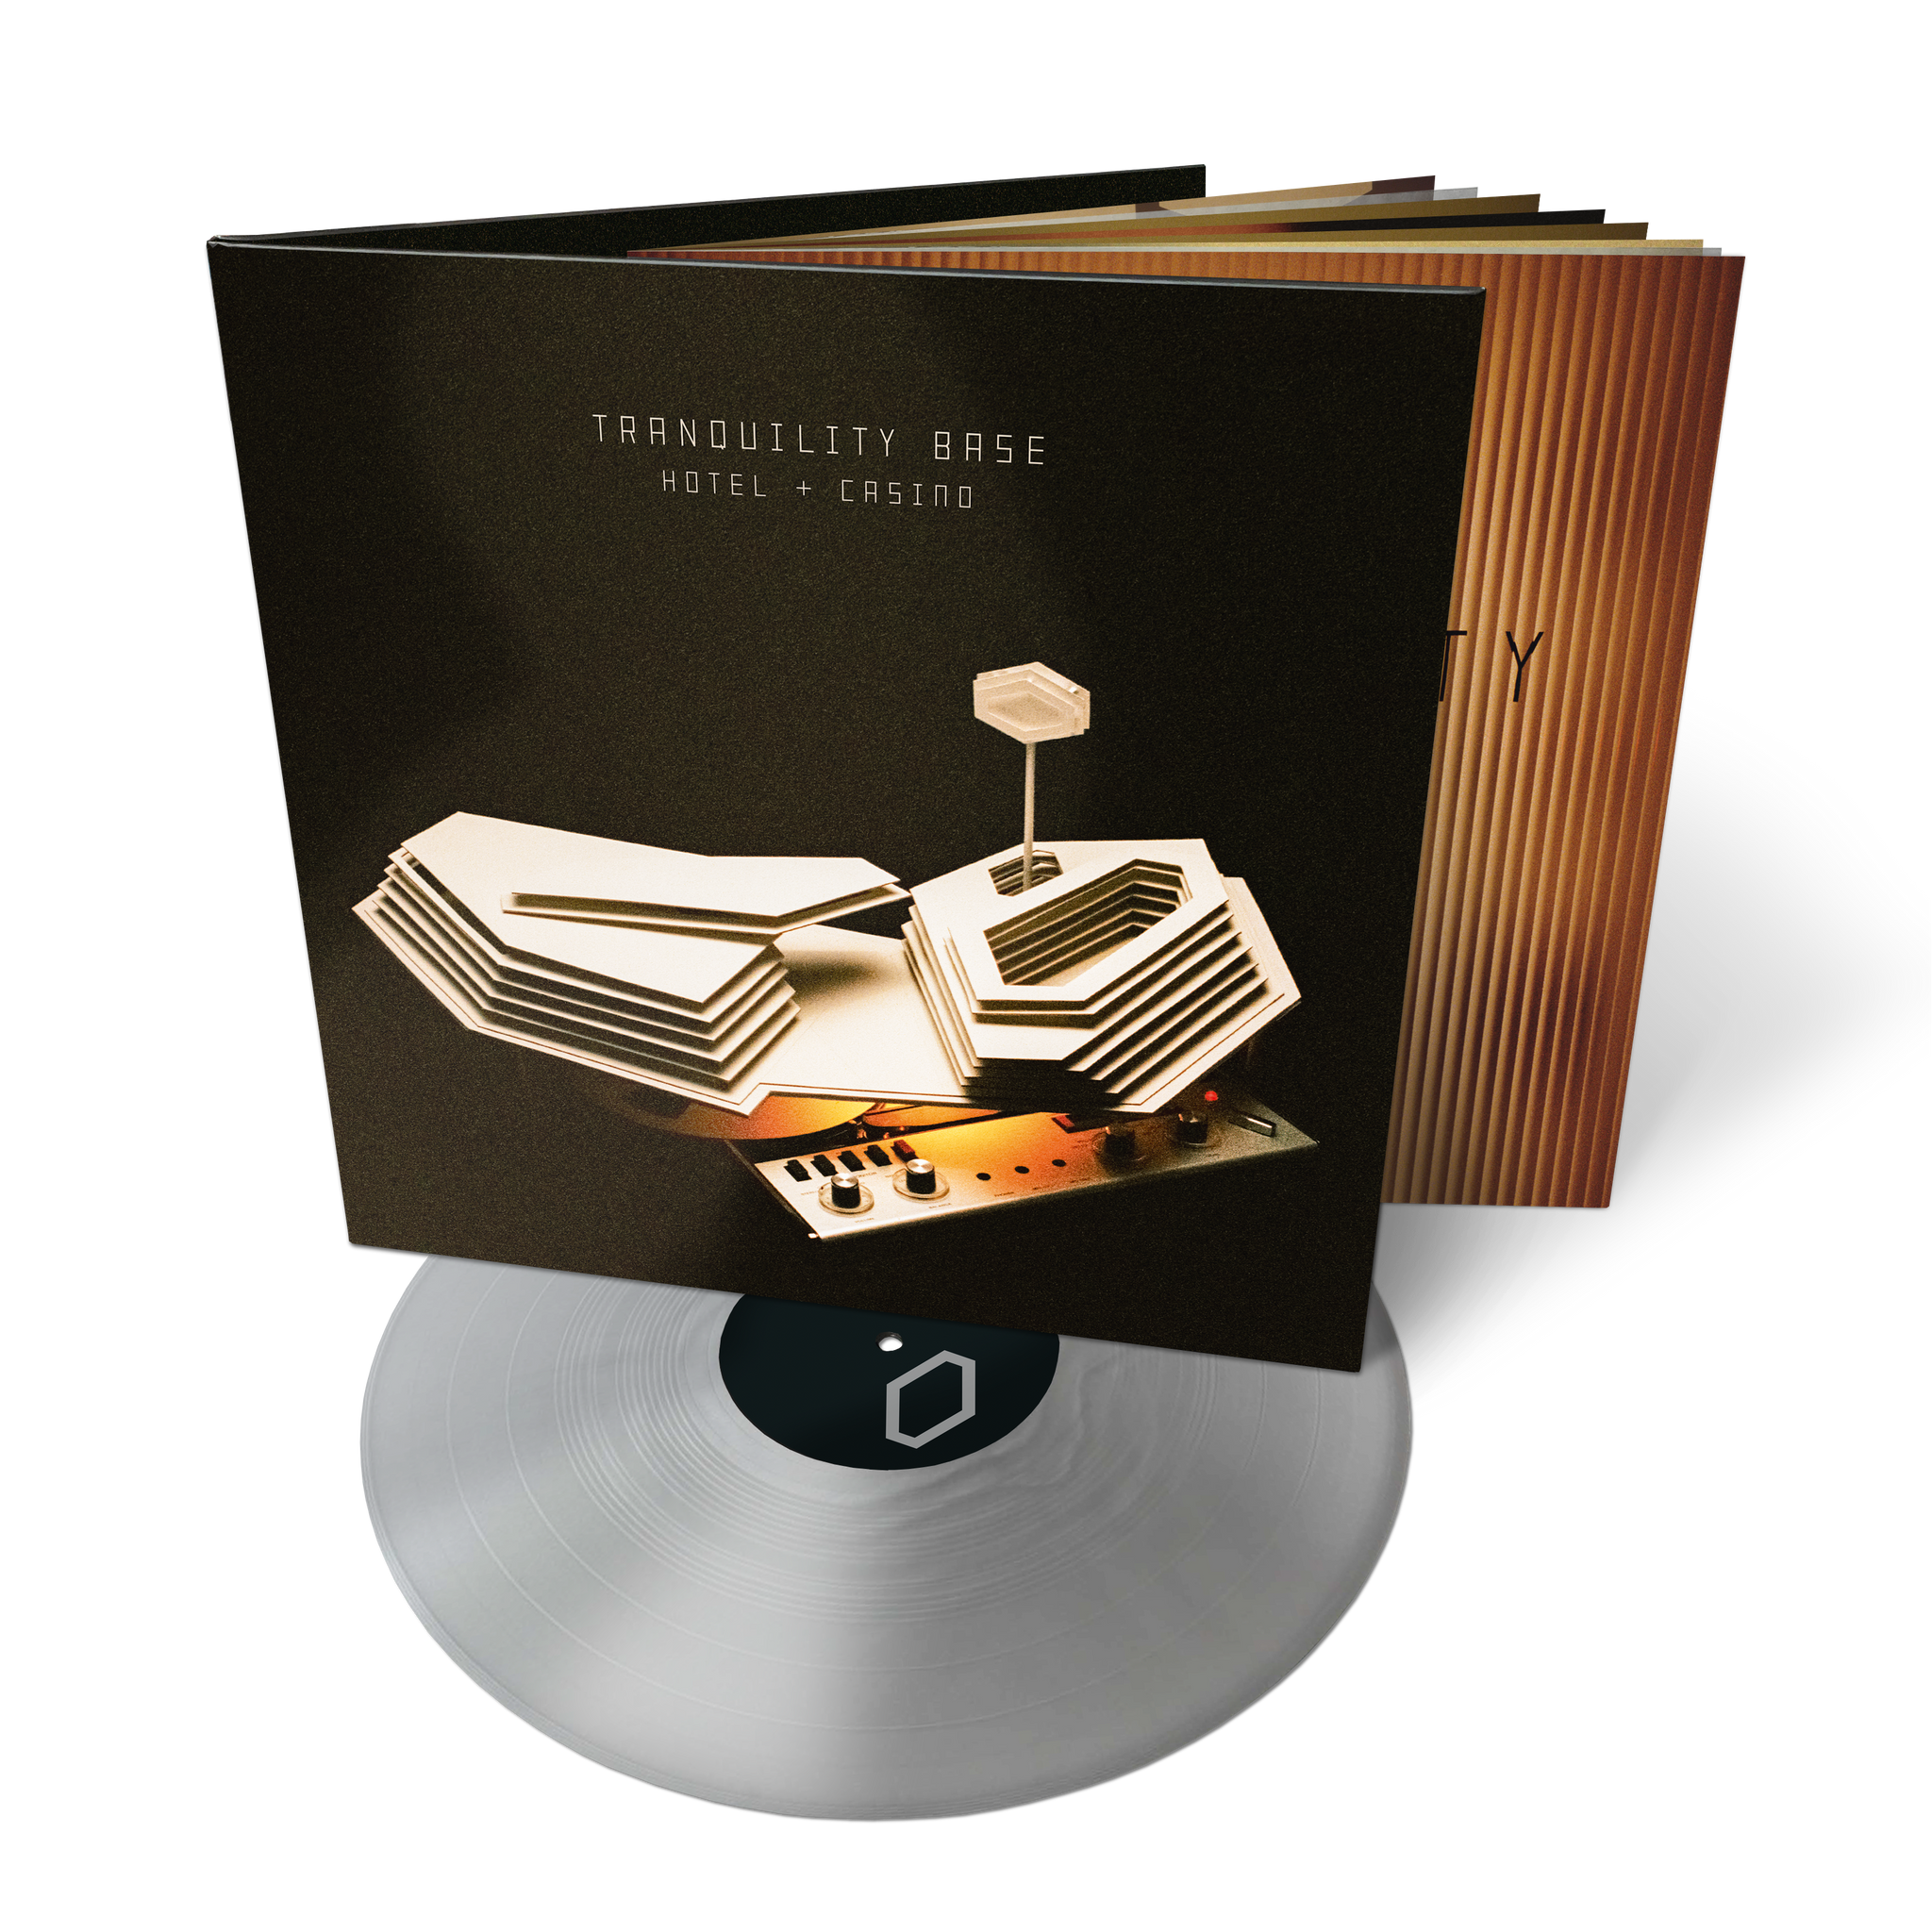 TRANQUILITY BASE HOTEL + CASINO - EXCLUSIVE SILVER VINYL